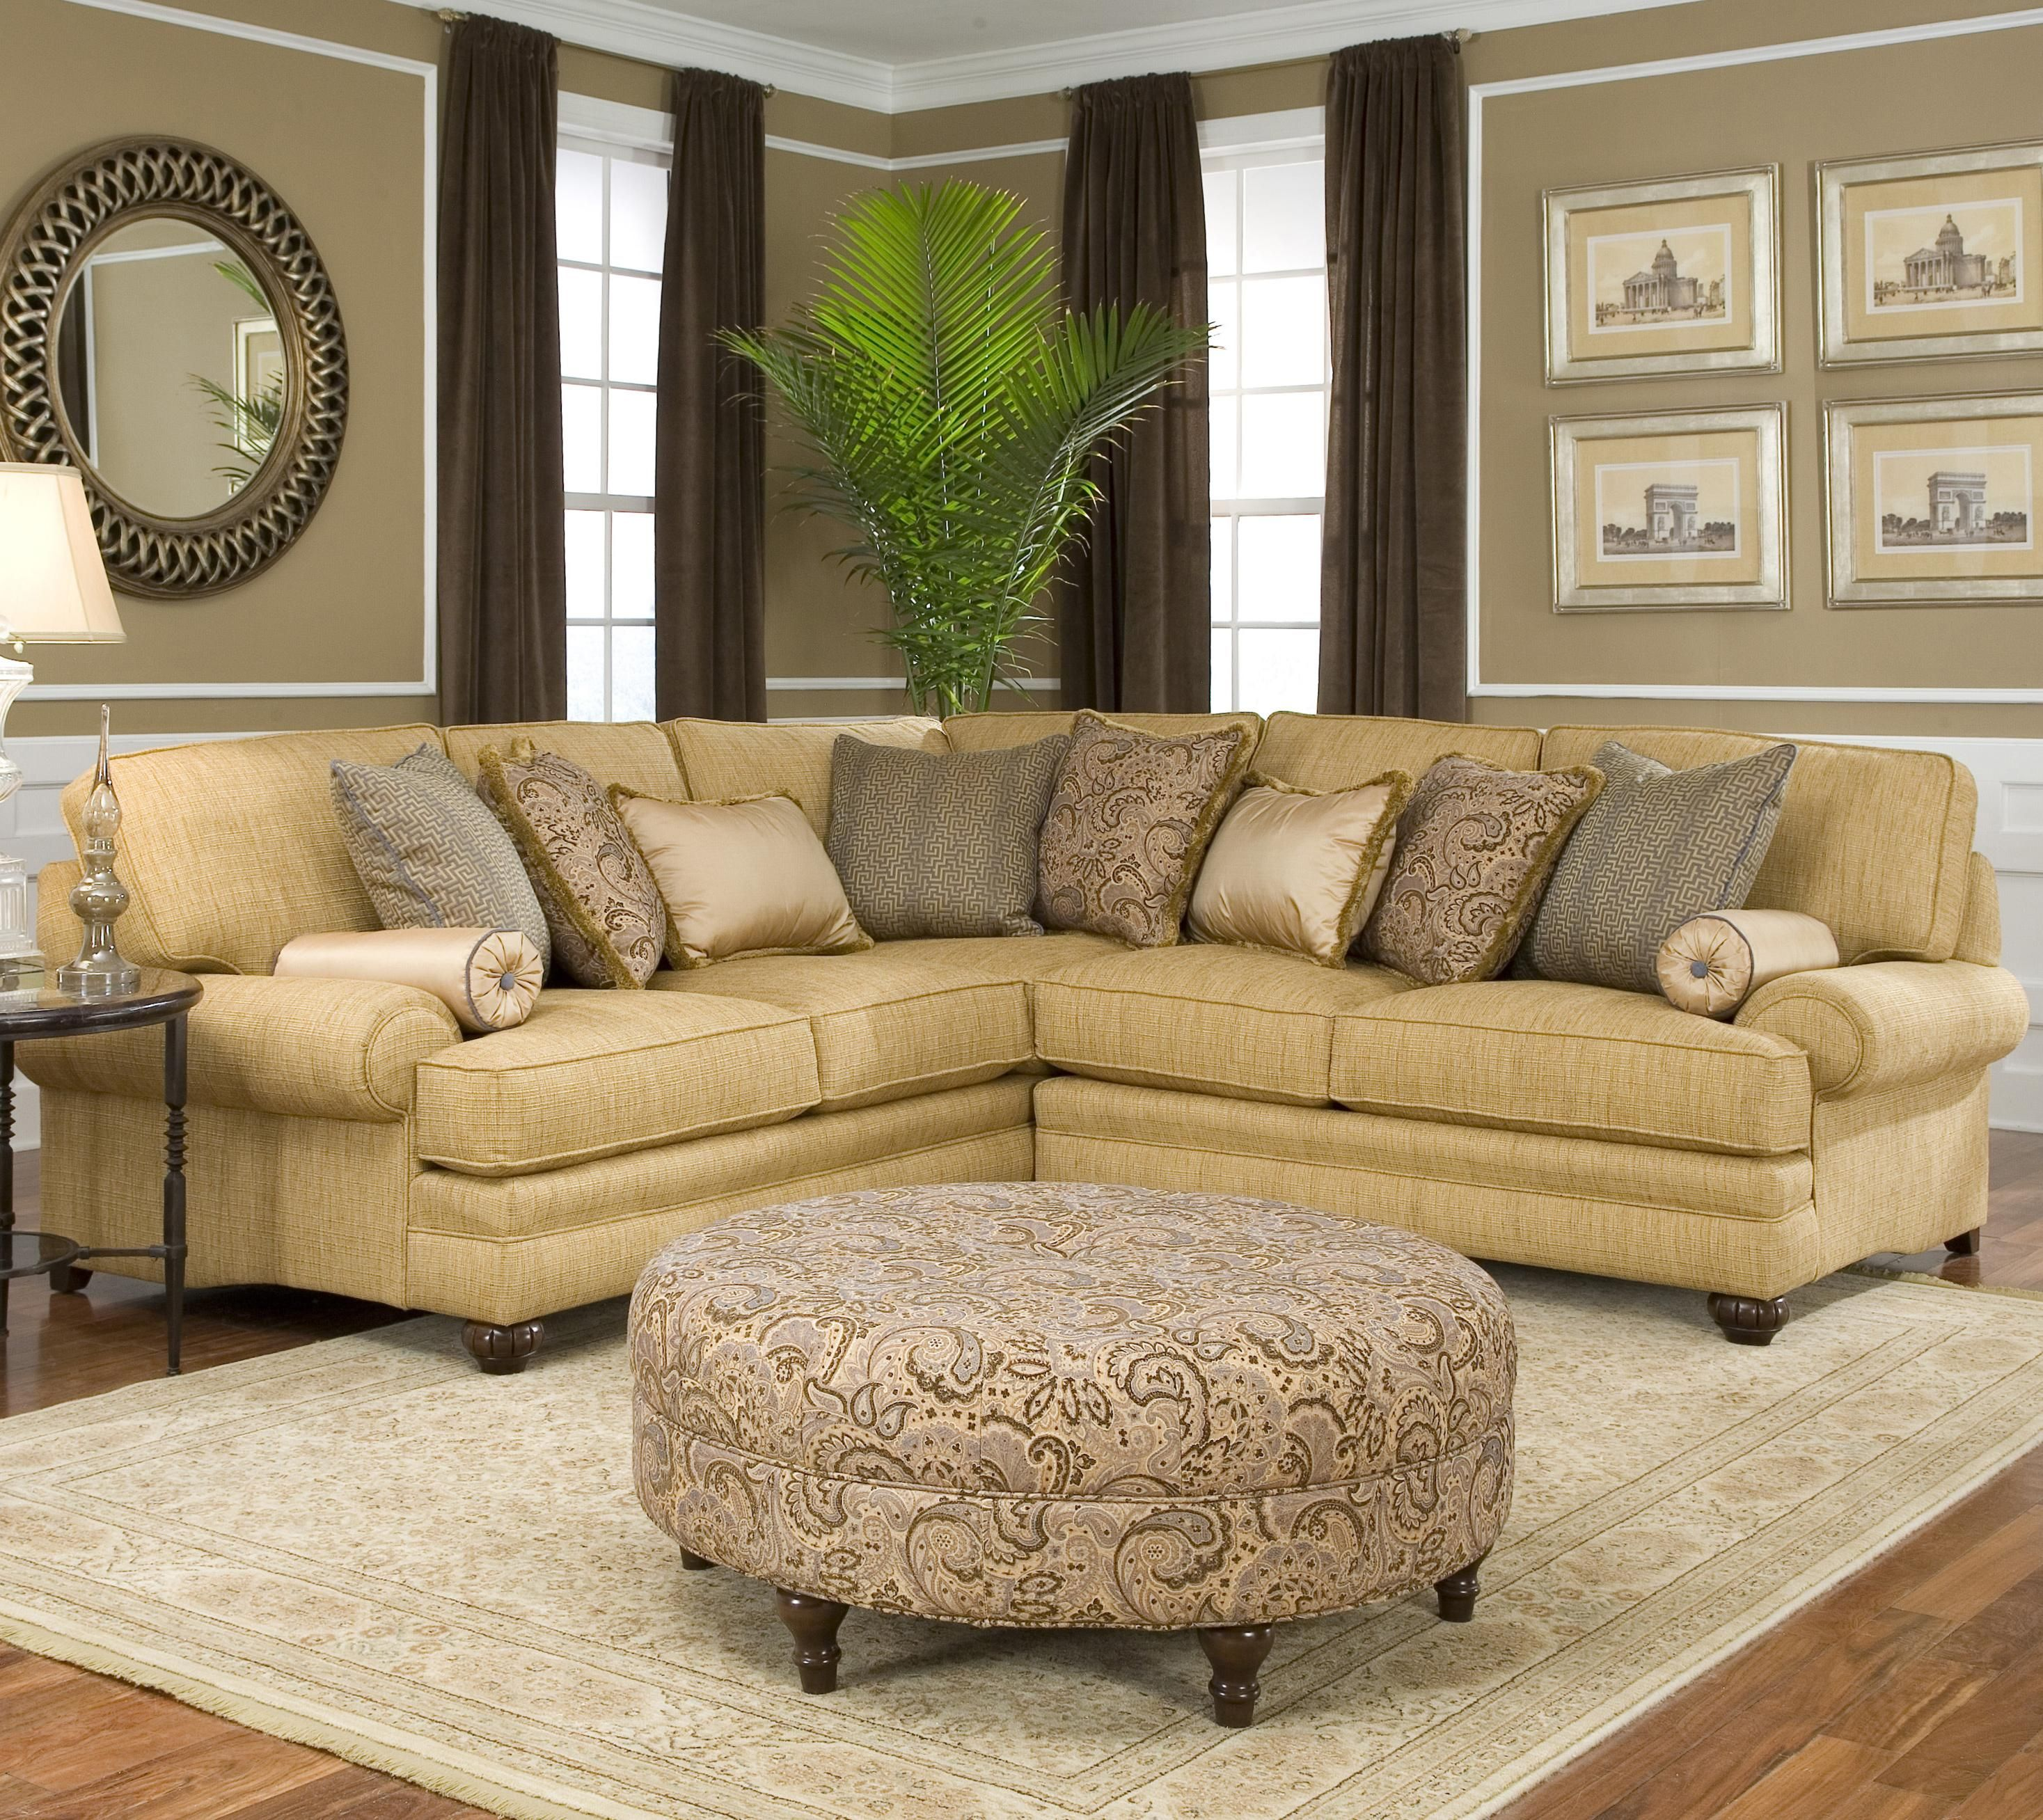 376 Corner Sectional Sofa By Smith Brothers Corner Sectional Sofa At Home Furniture Store Sectional Sofas Living Room